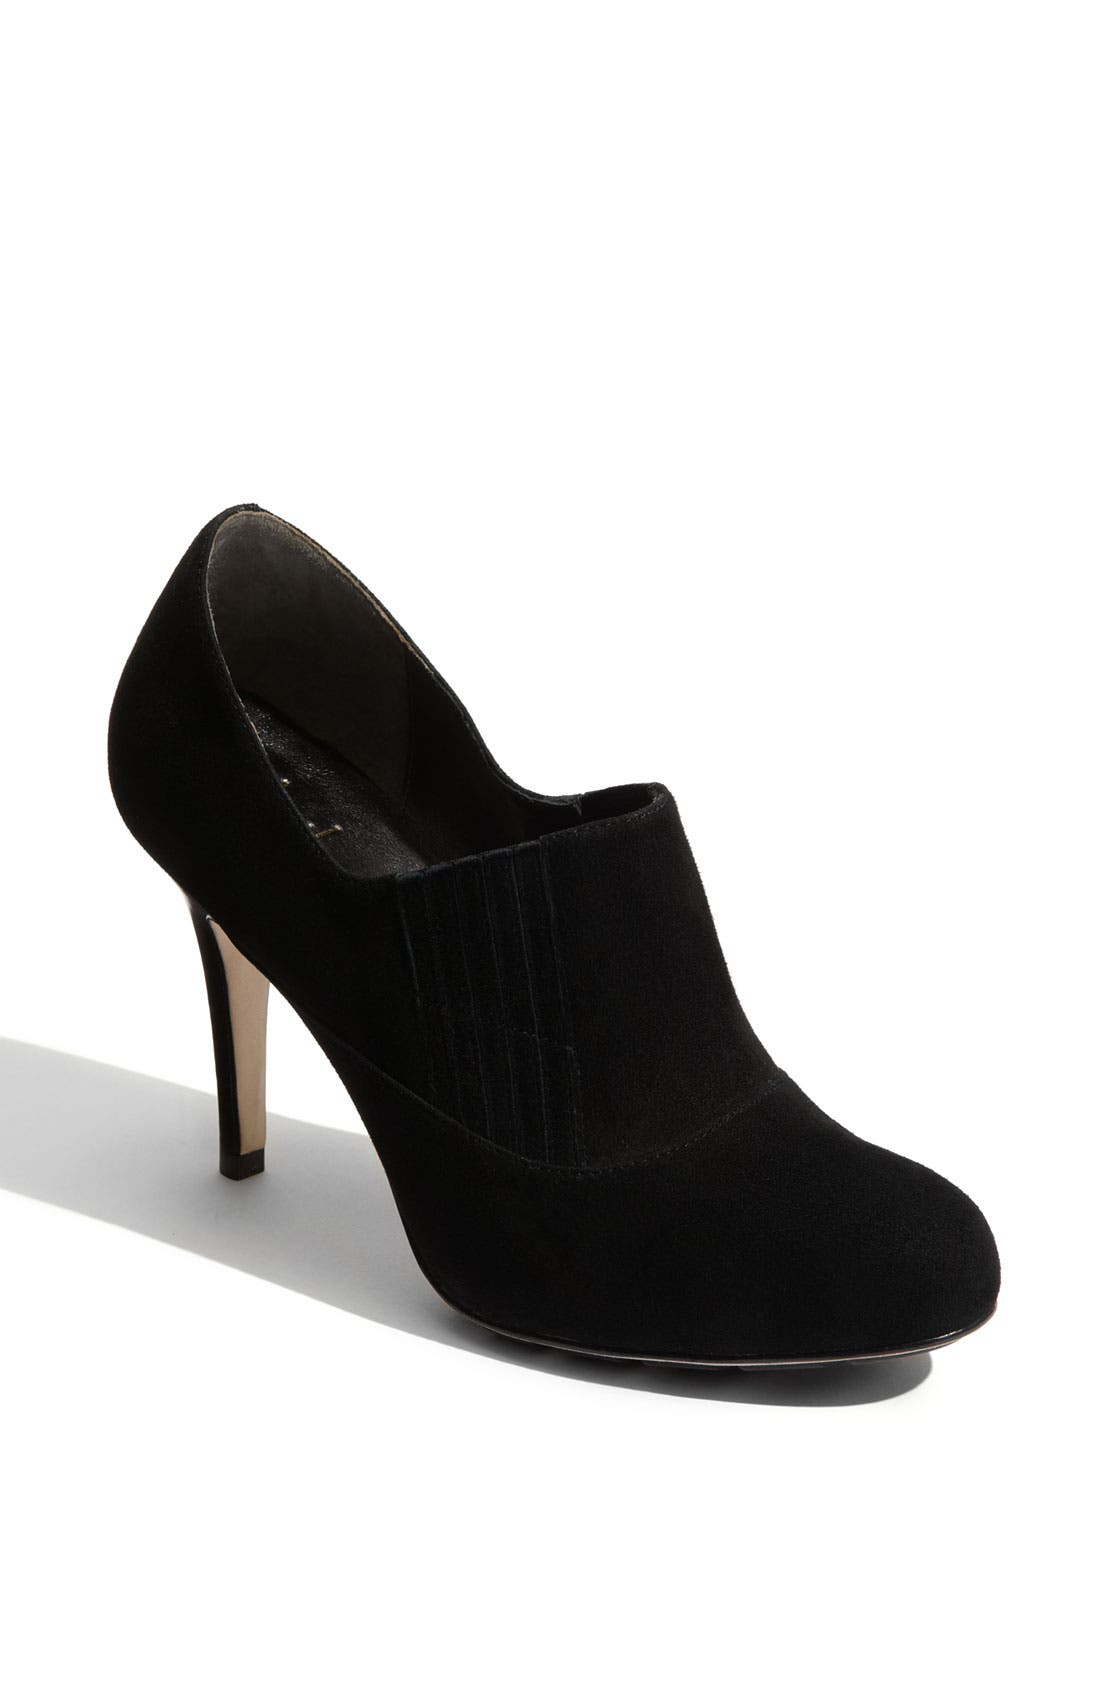 Main Image - Cole Haan 'Air Talia' Suede Bootie